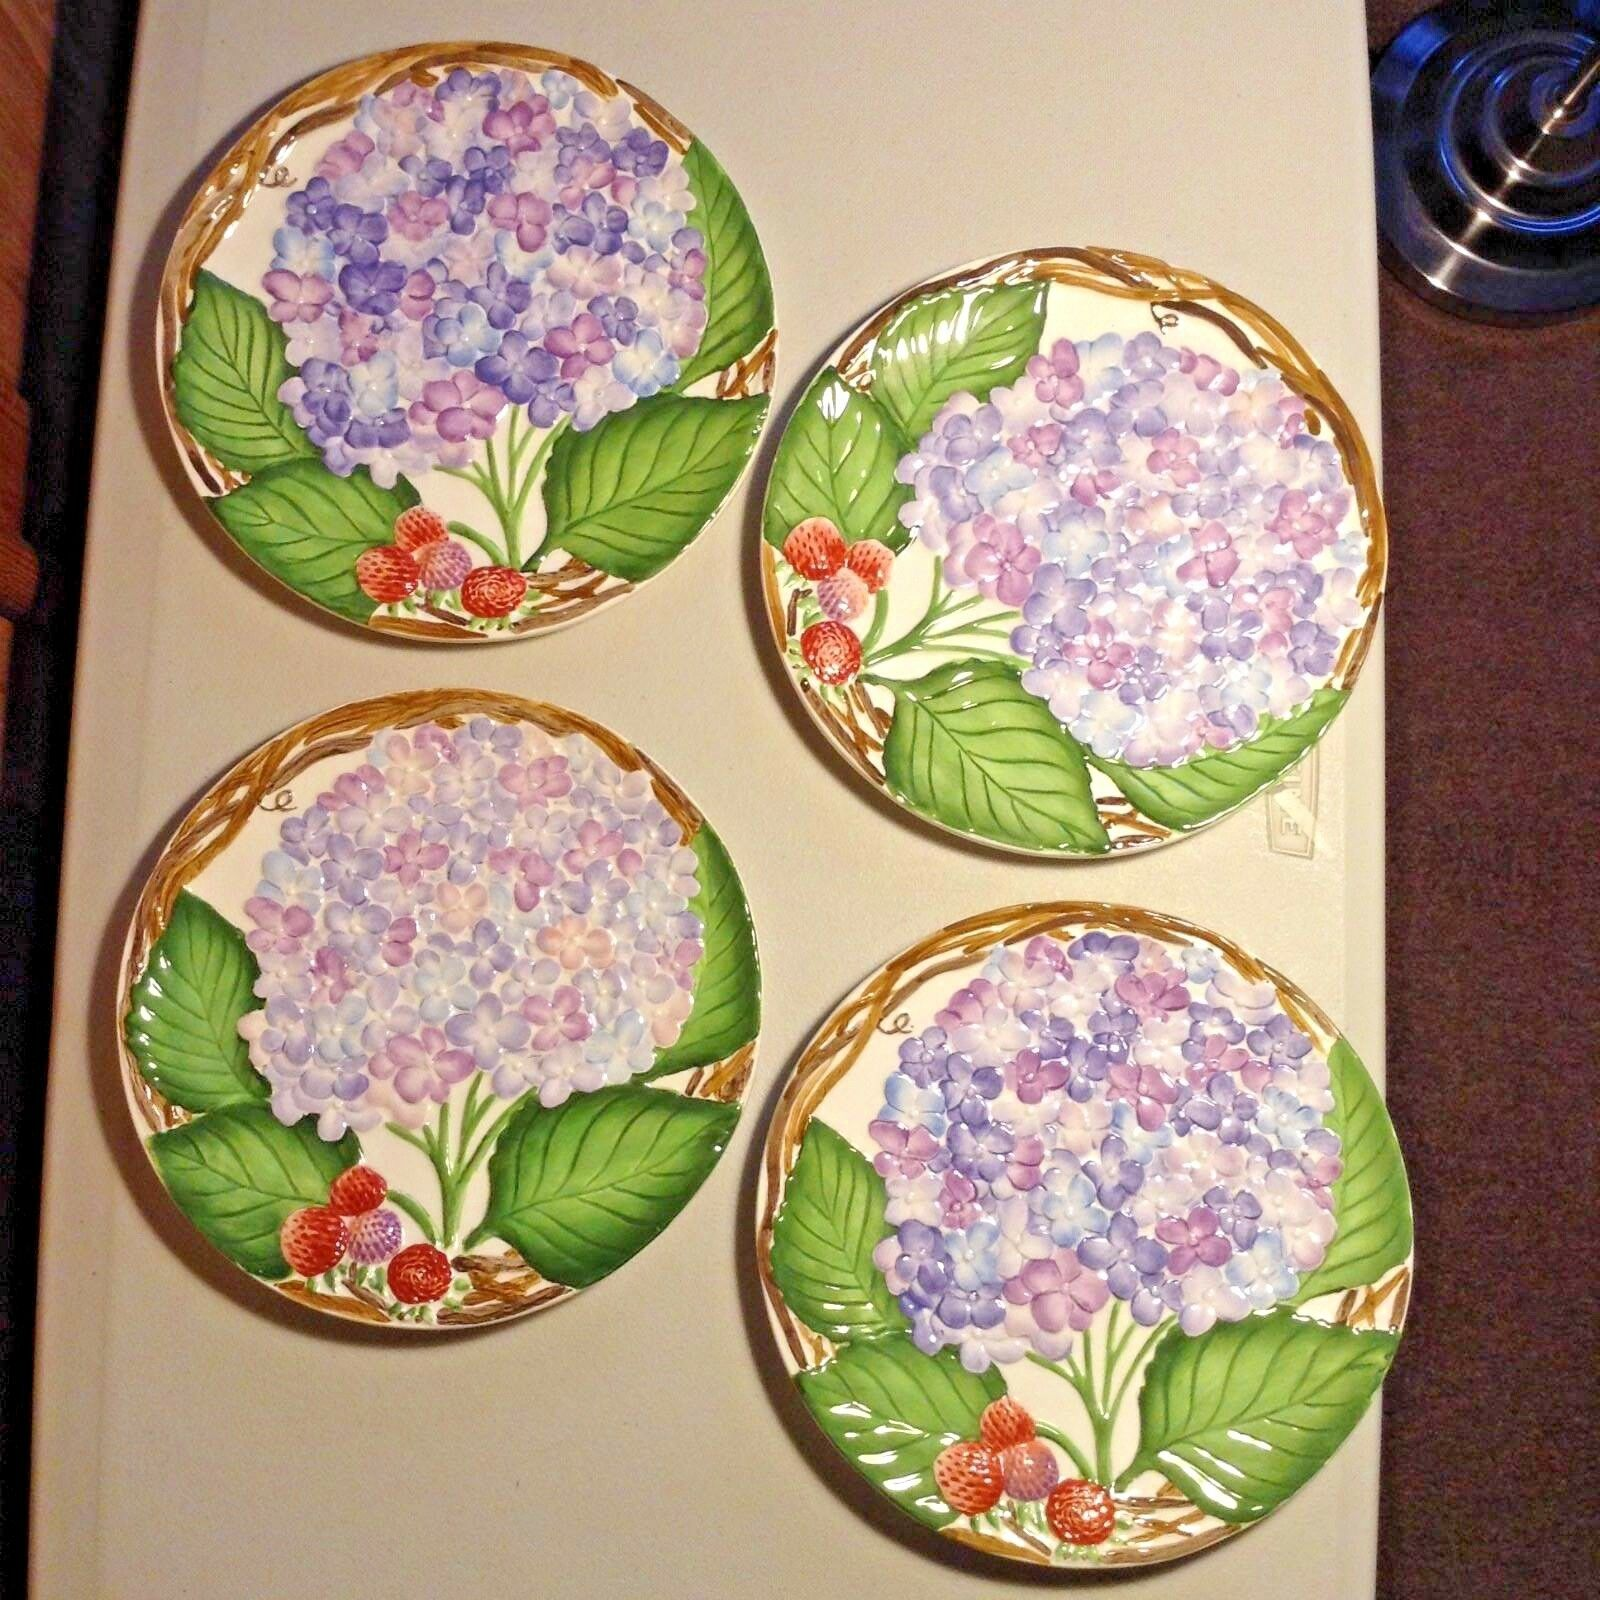 JEANNE BEURY 2000 Set of four Hand Painted HYDRANGEAS & BERRIES Salad Plates 8.5